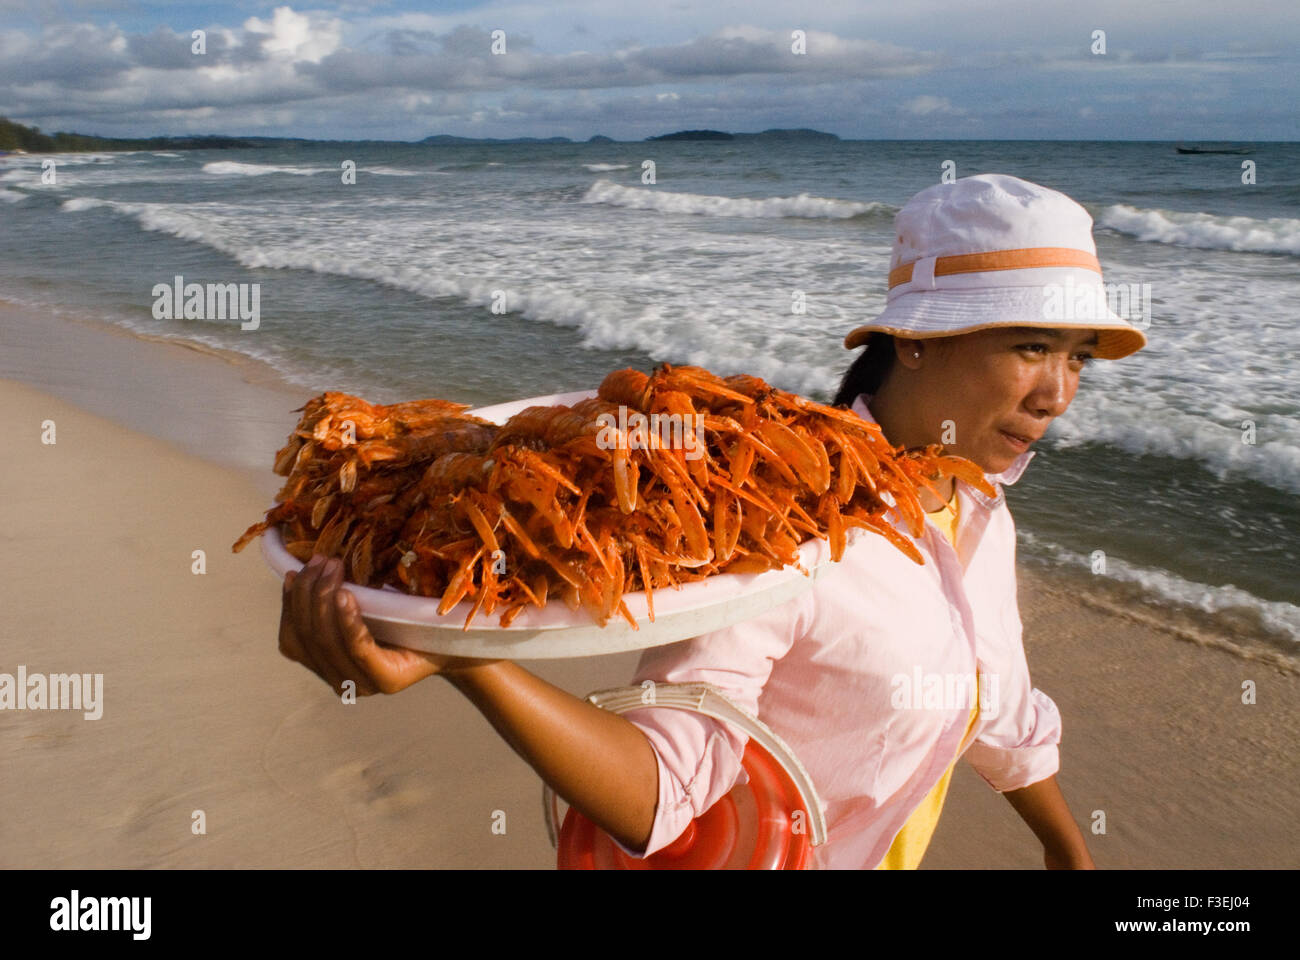 Selling crayfish in Sihanoukville beach. Arriving in Sikanouville after an easy 4-hour bus ride with Mekong Angkor - Stock Image